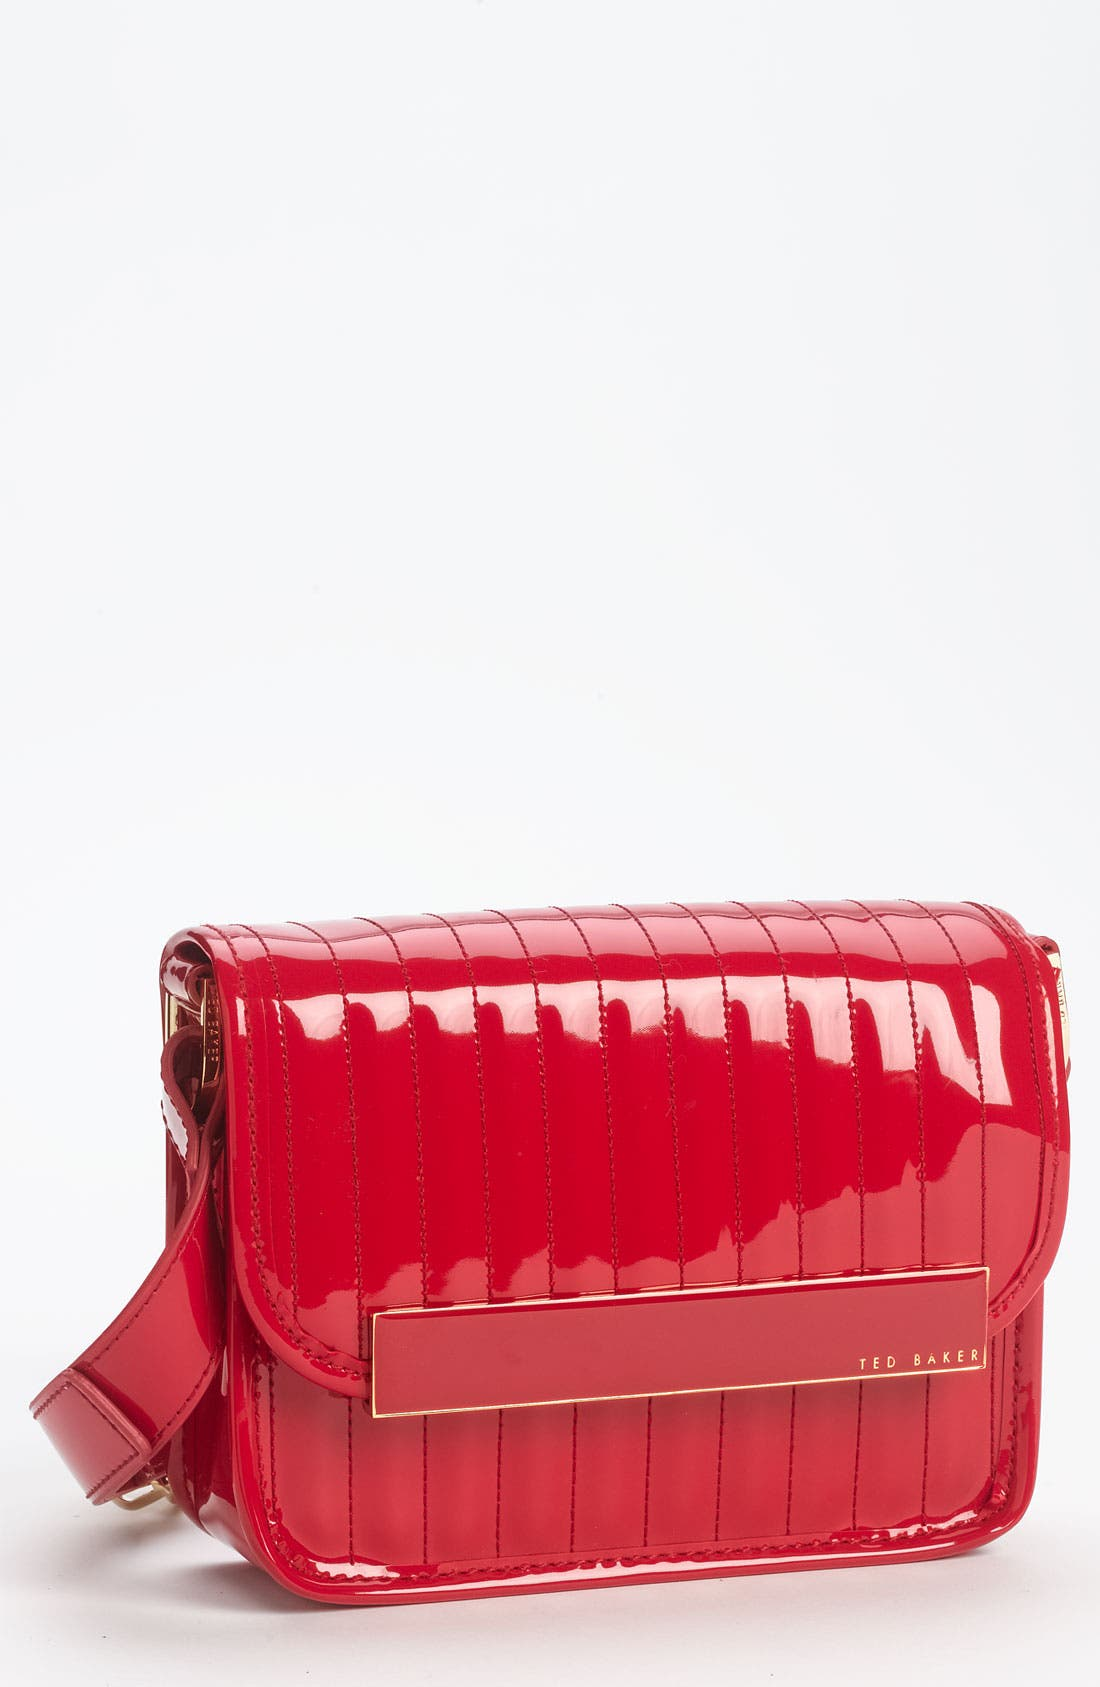 Main Image - Ted Baker London 'Small' Crossbody Bag